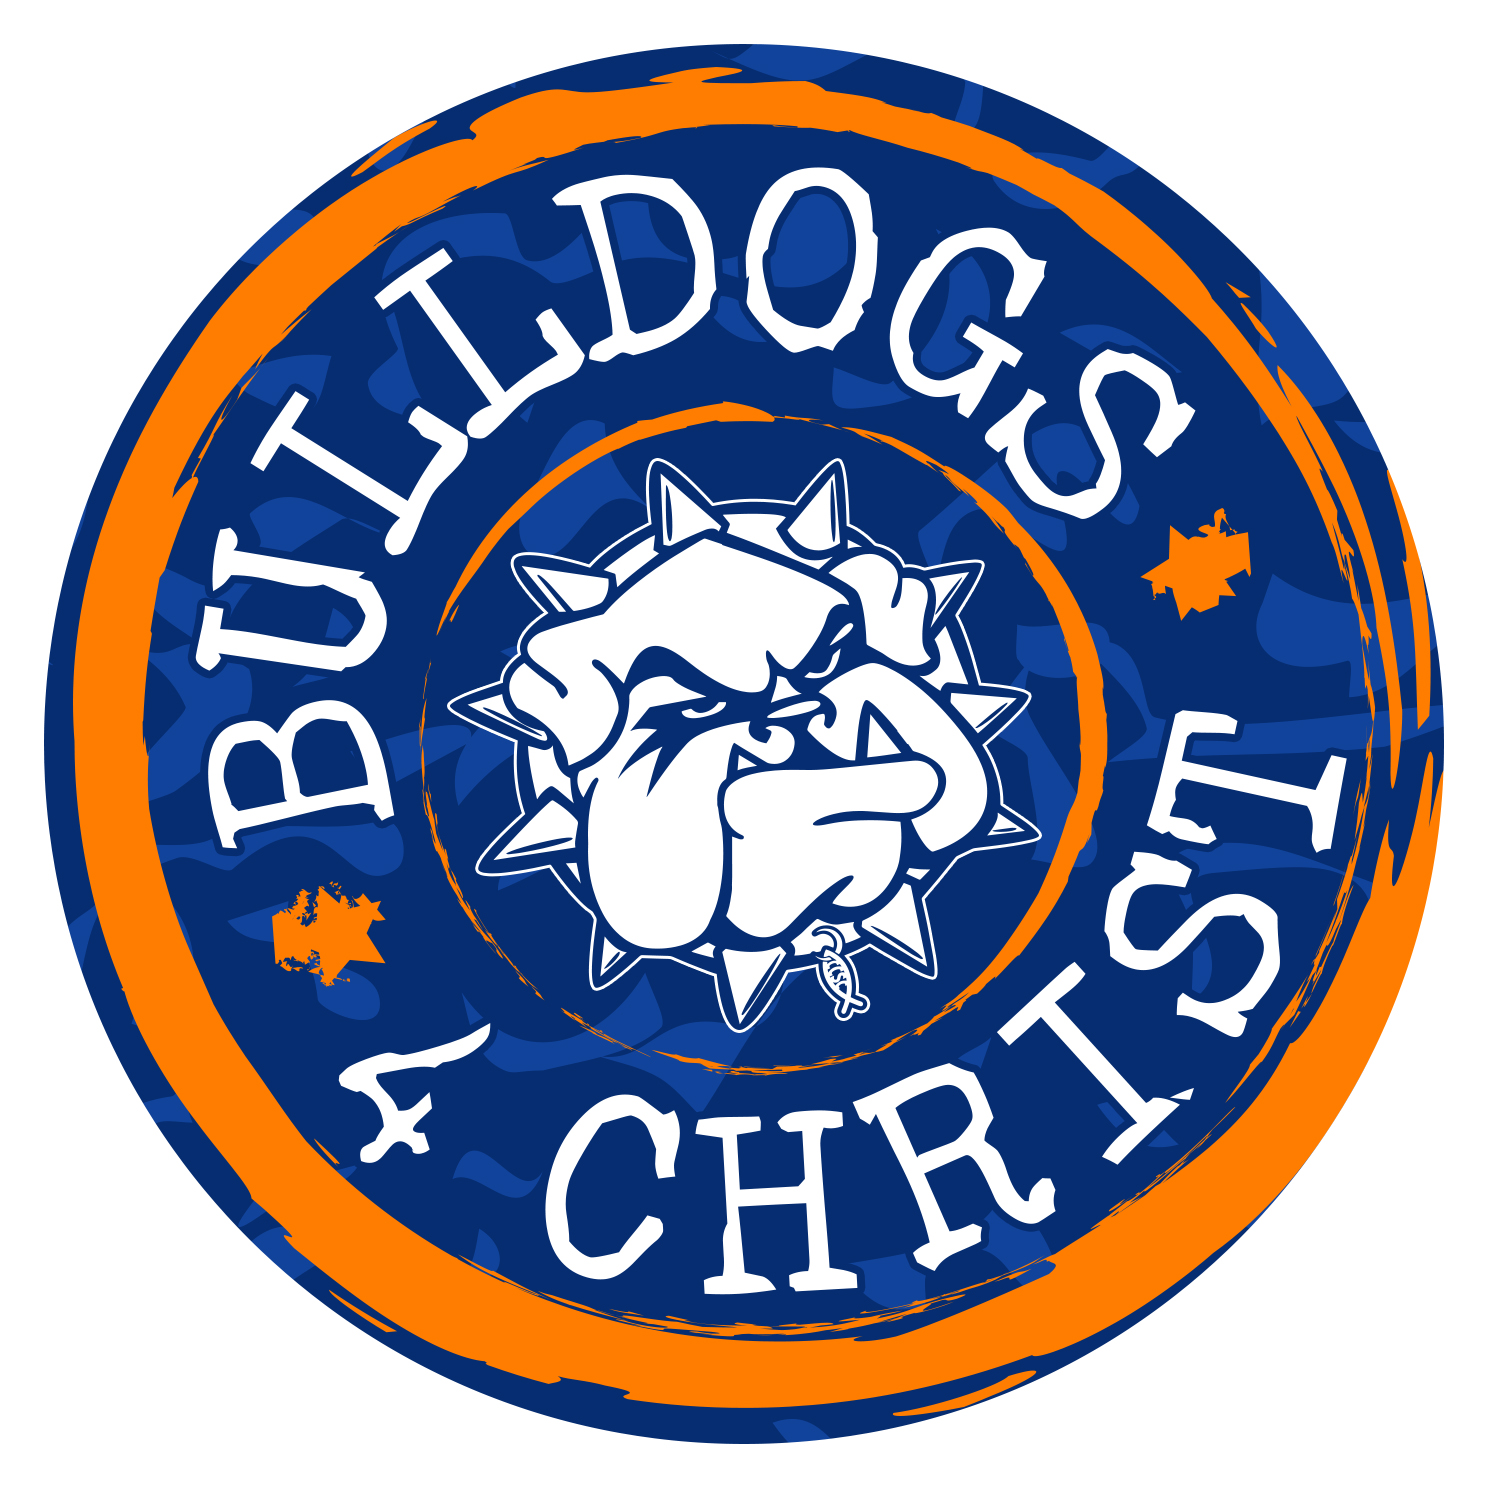 bulldogs for christ sticker.jpg